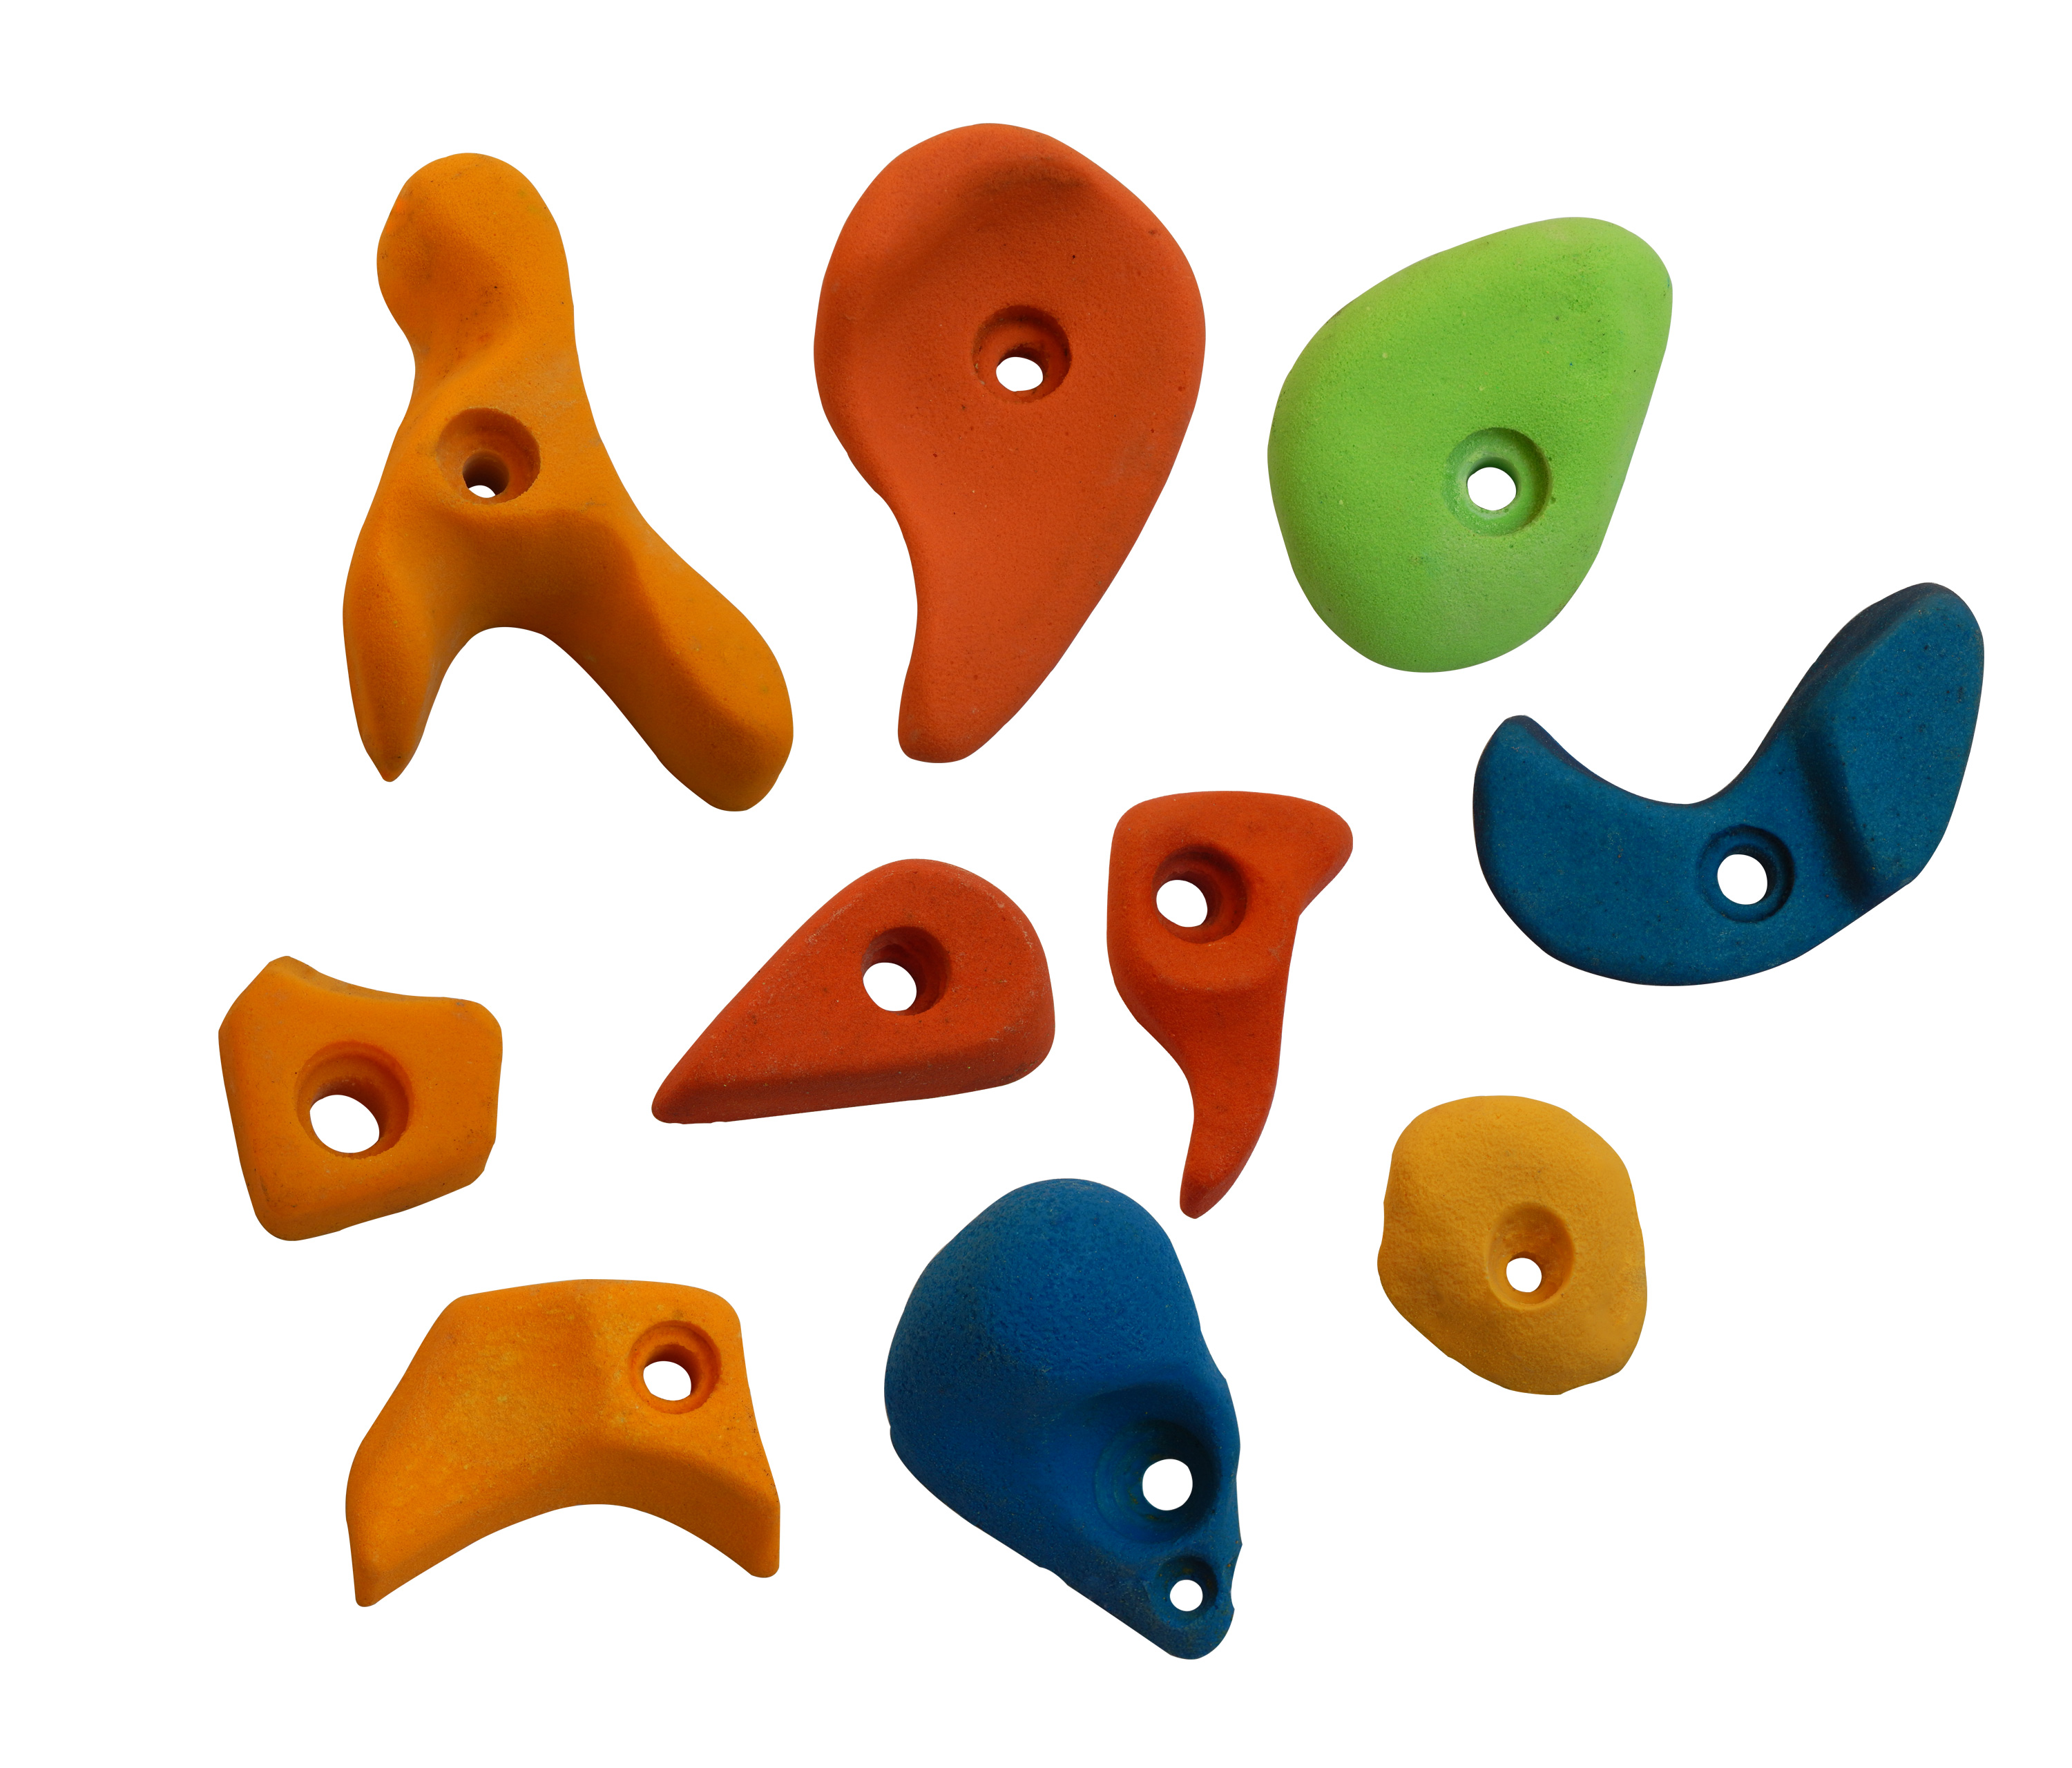 Mix Climbing Holds Manufacturers in Himachal Pradesh